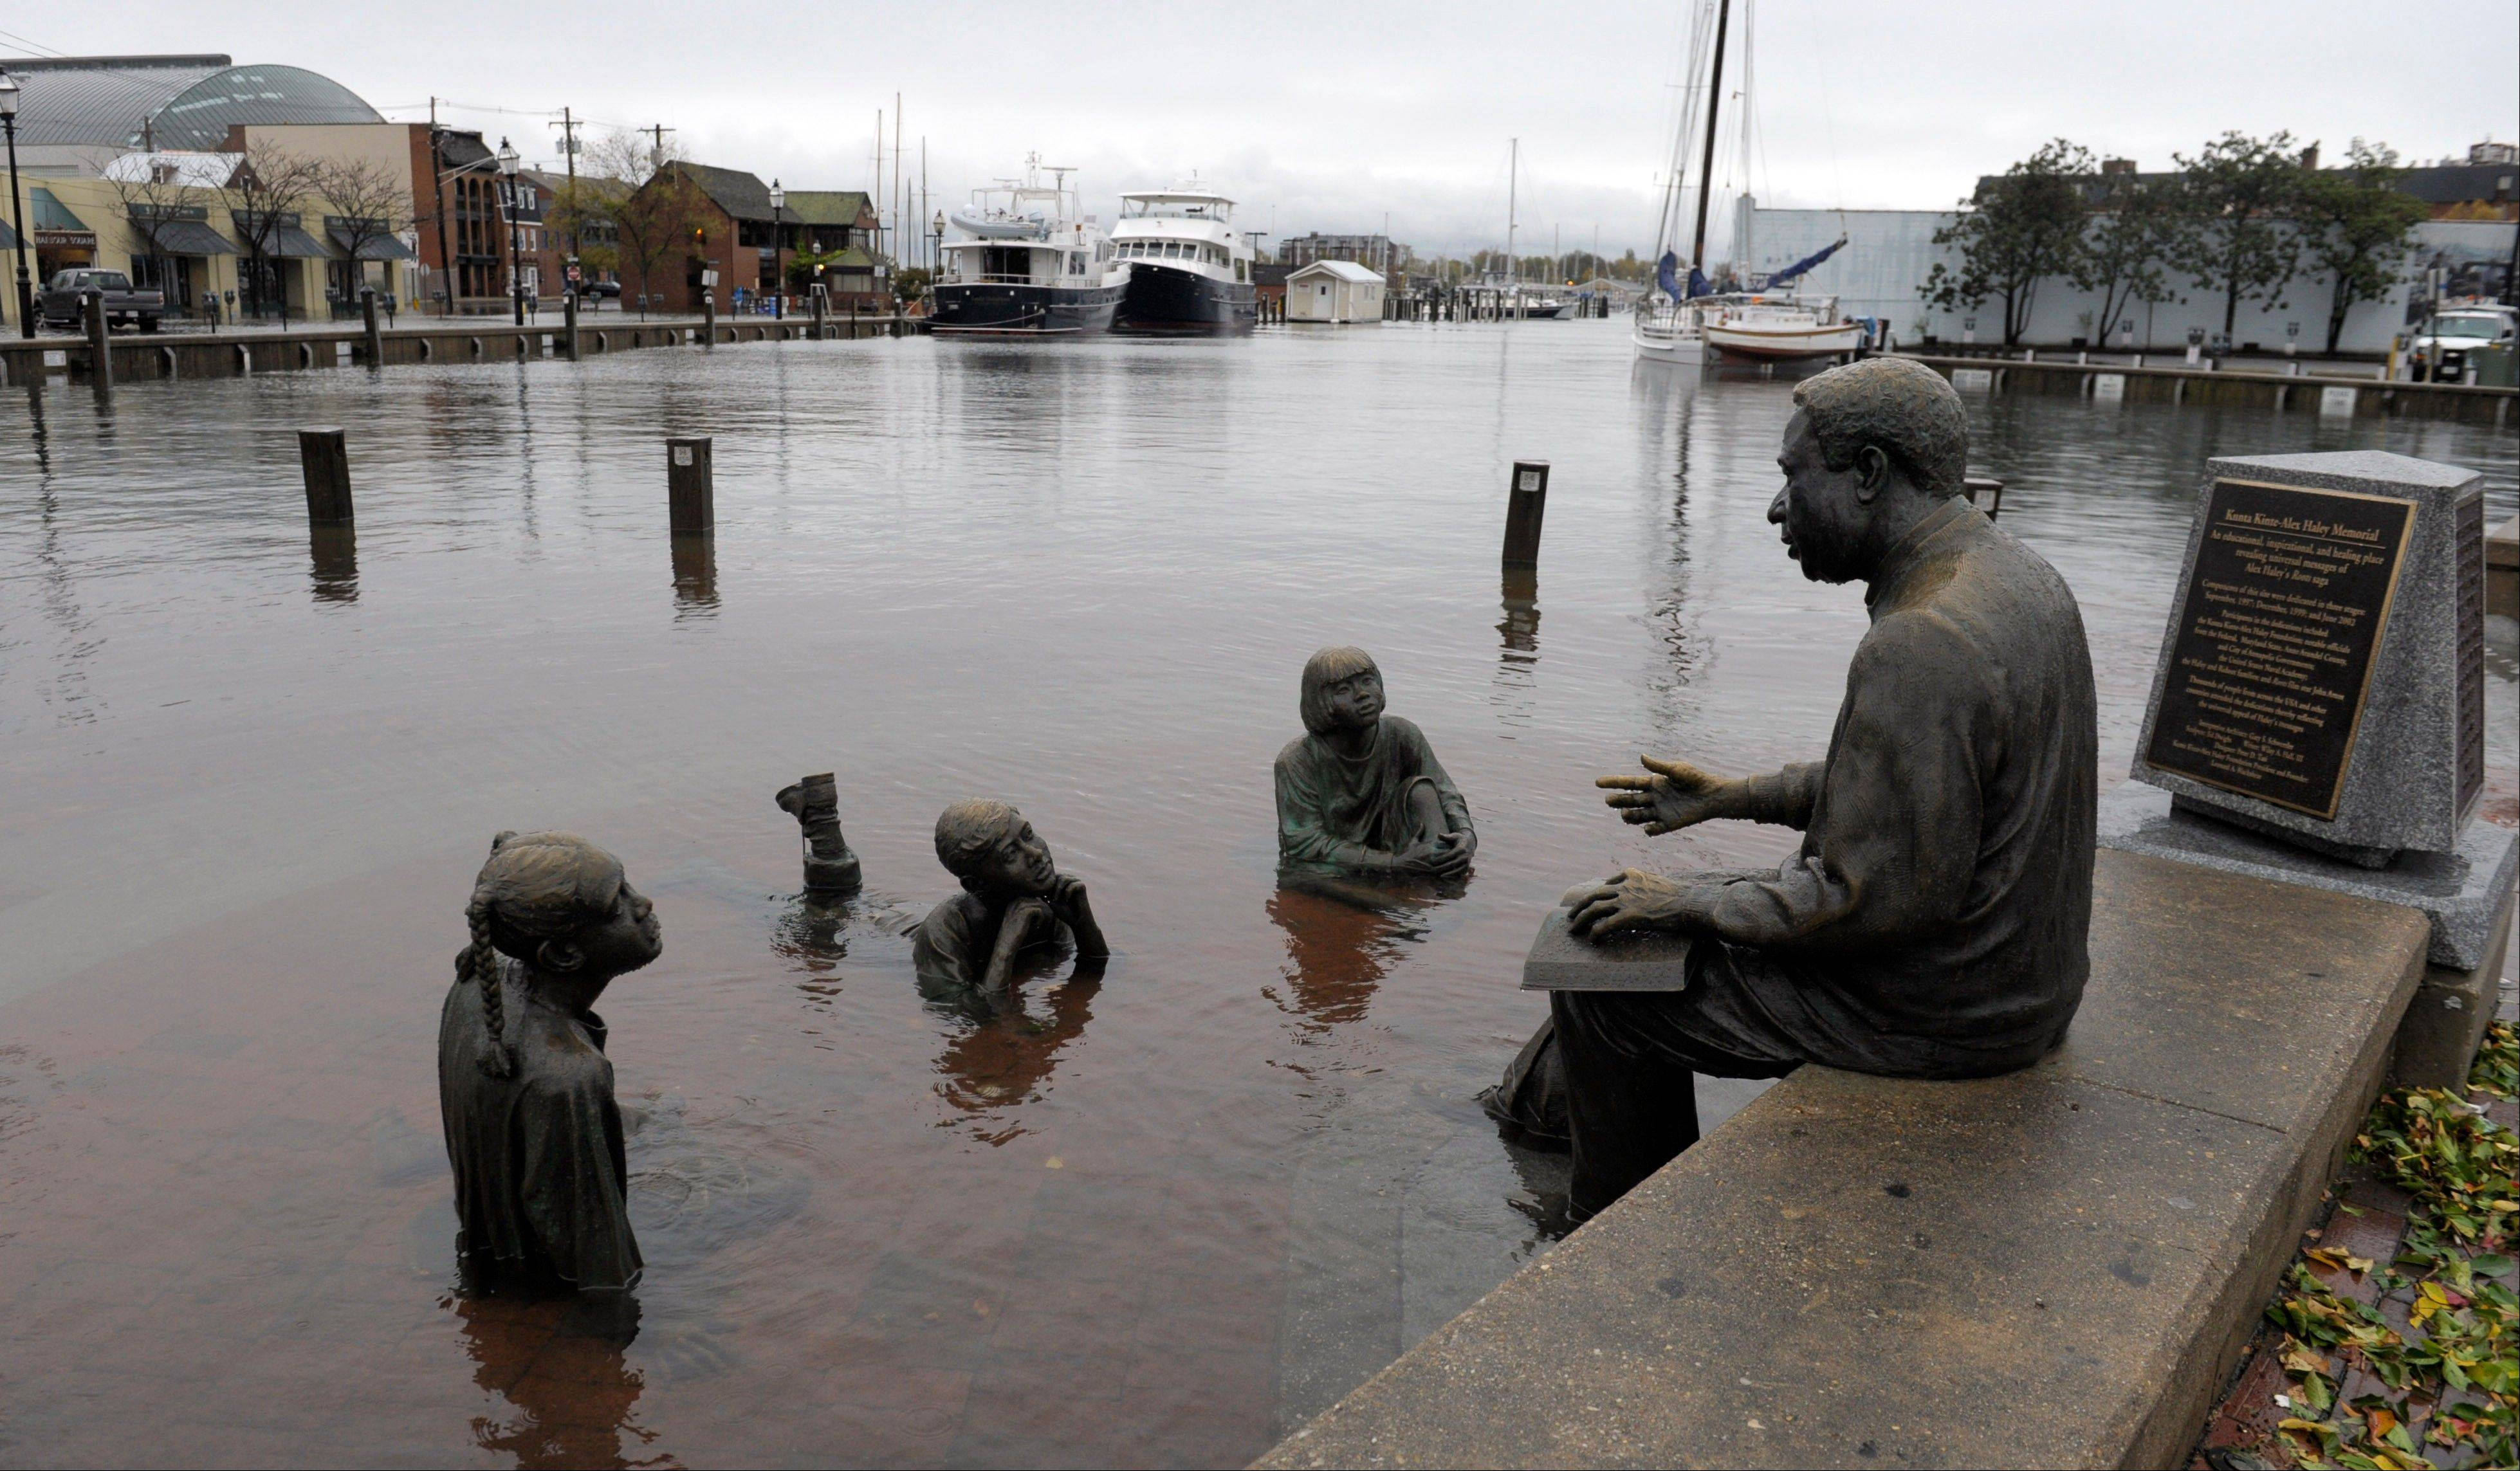 The Kunta Kinte-Alex Haley Memorial sits in floodwaters in downtown Annapolis, Md., Tuesday, Oct. 30, 2012, after the superstorm and the remnants of Hurricane Sandy passed through Annapolis.